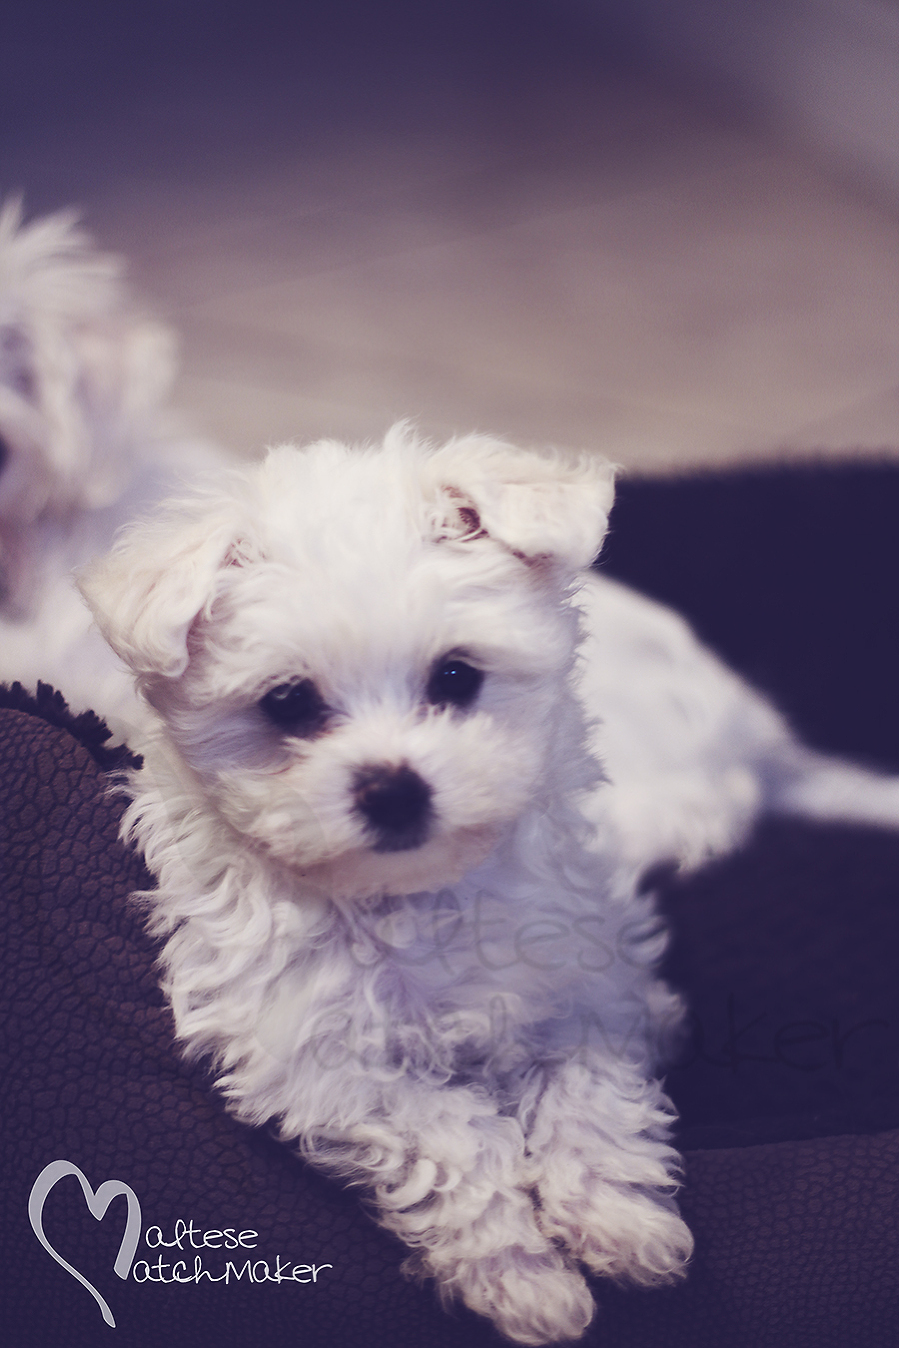 Tiny little Maltese Puppy resting vertical